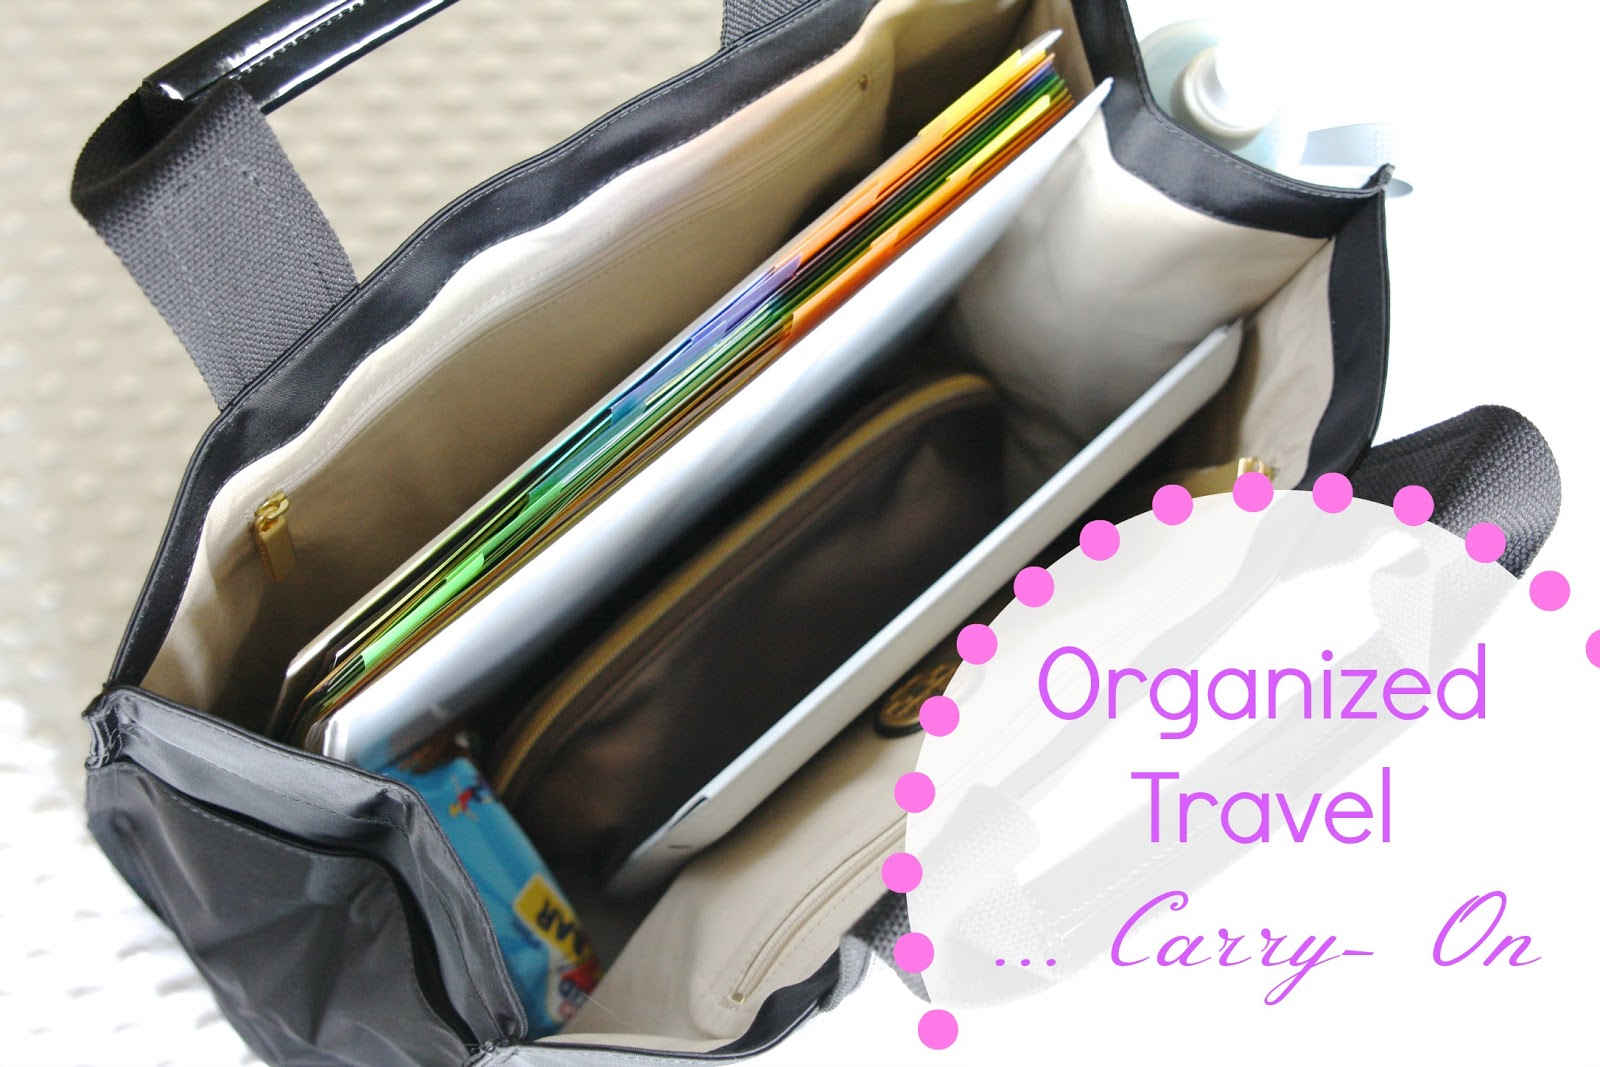 organized travel: carry-on bag